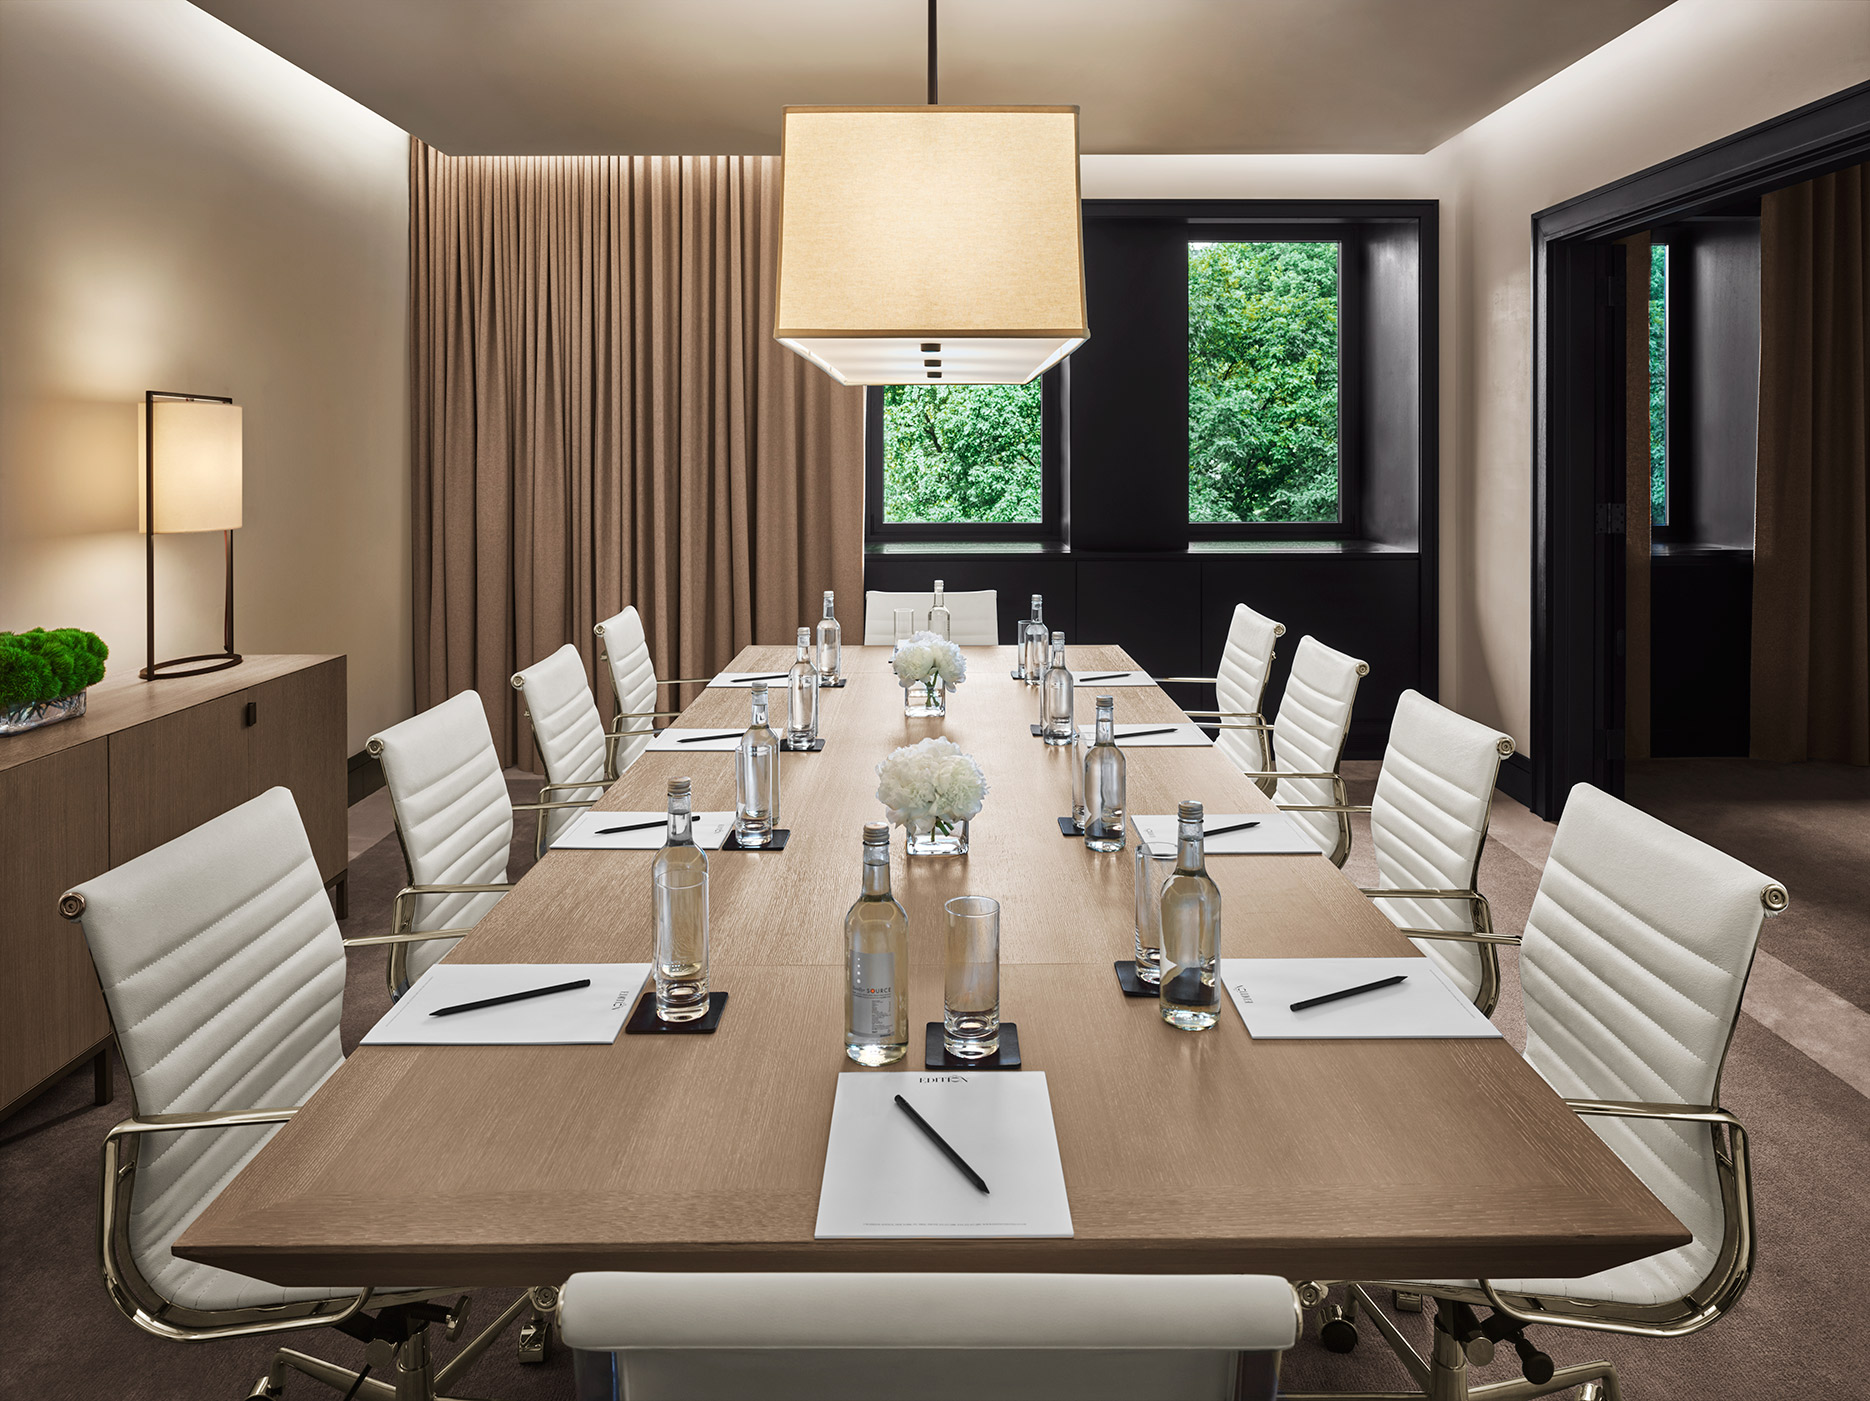 NYC-EDITION-Boardroom-1870x1400.jpg